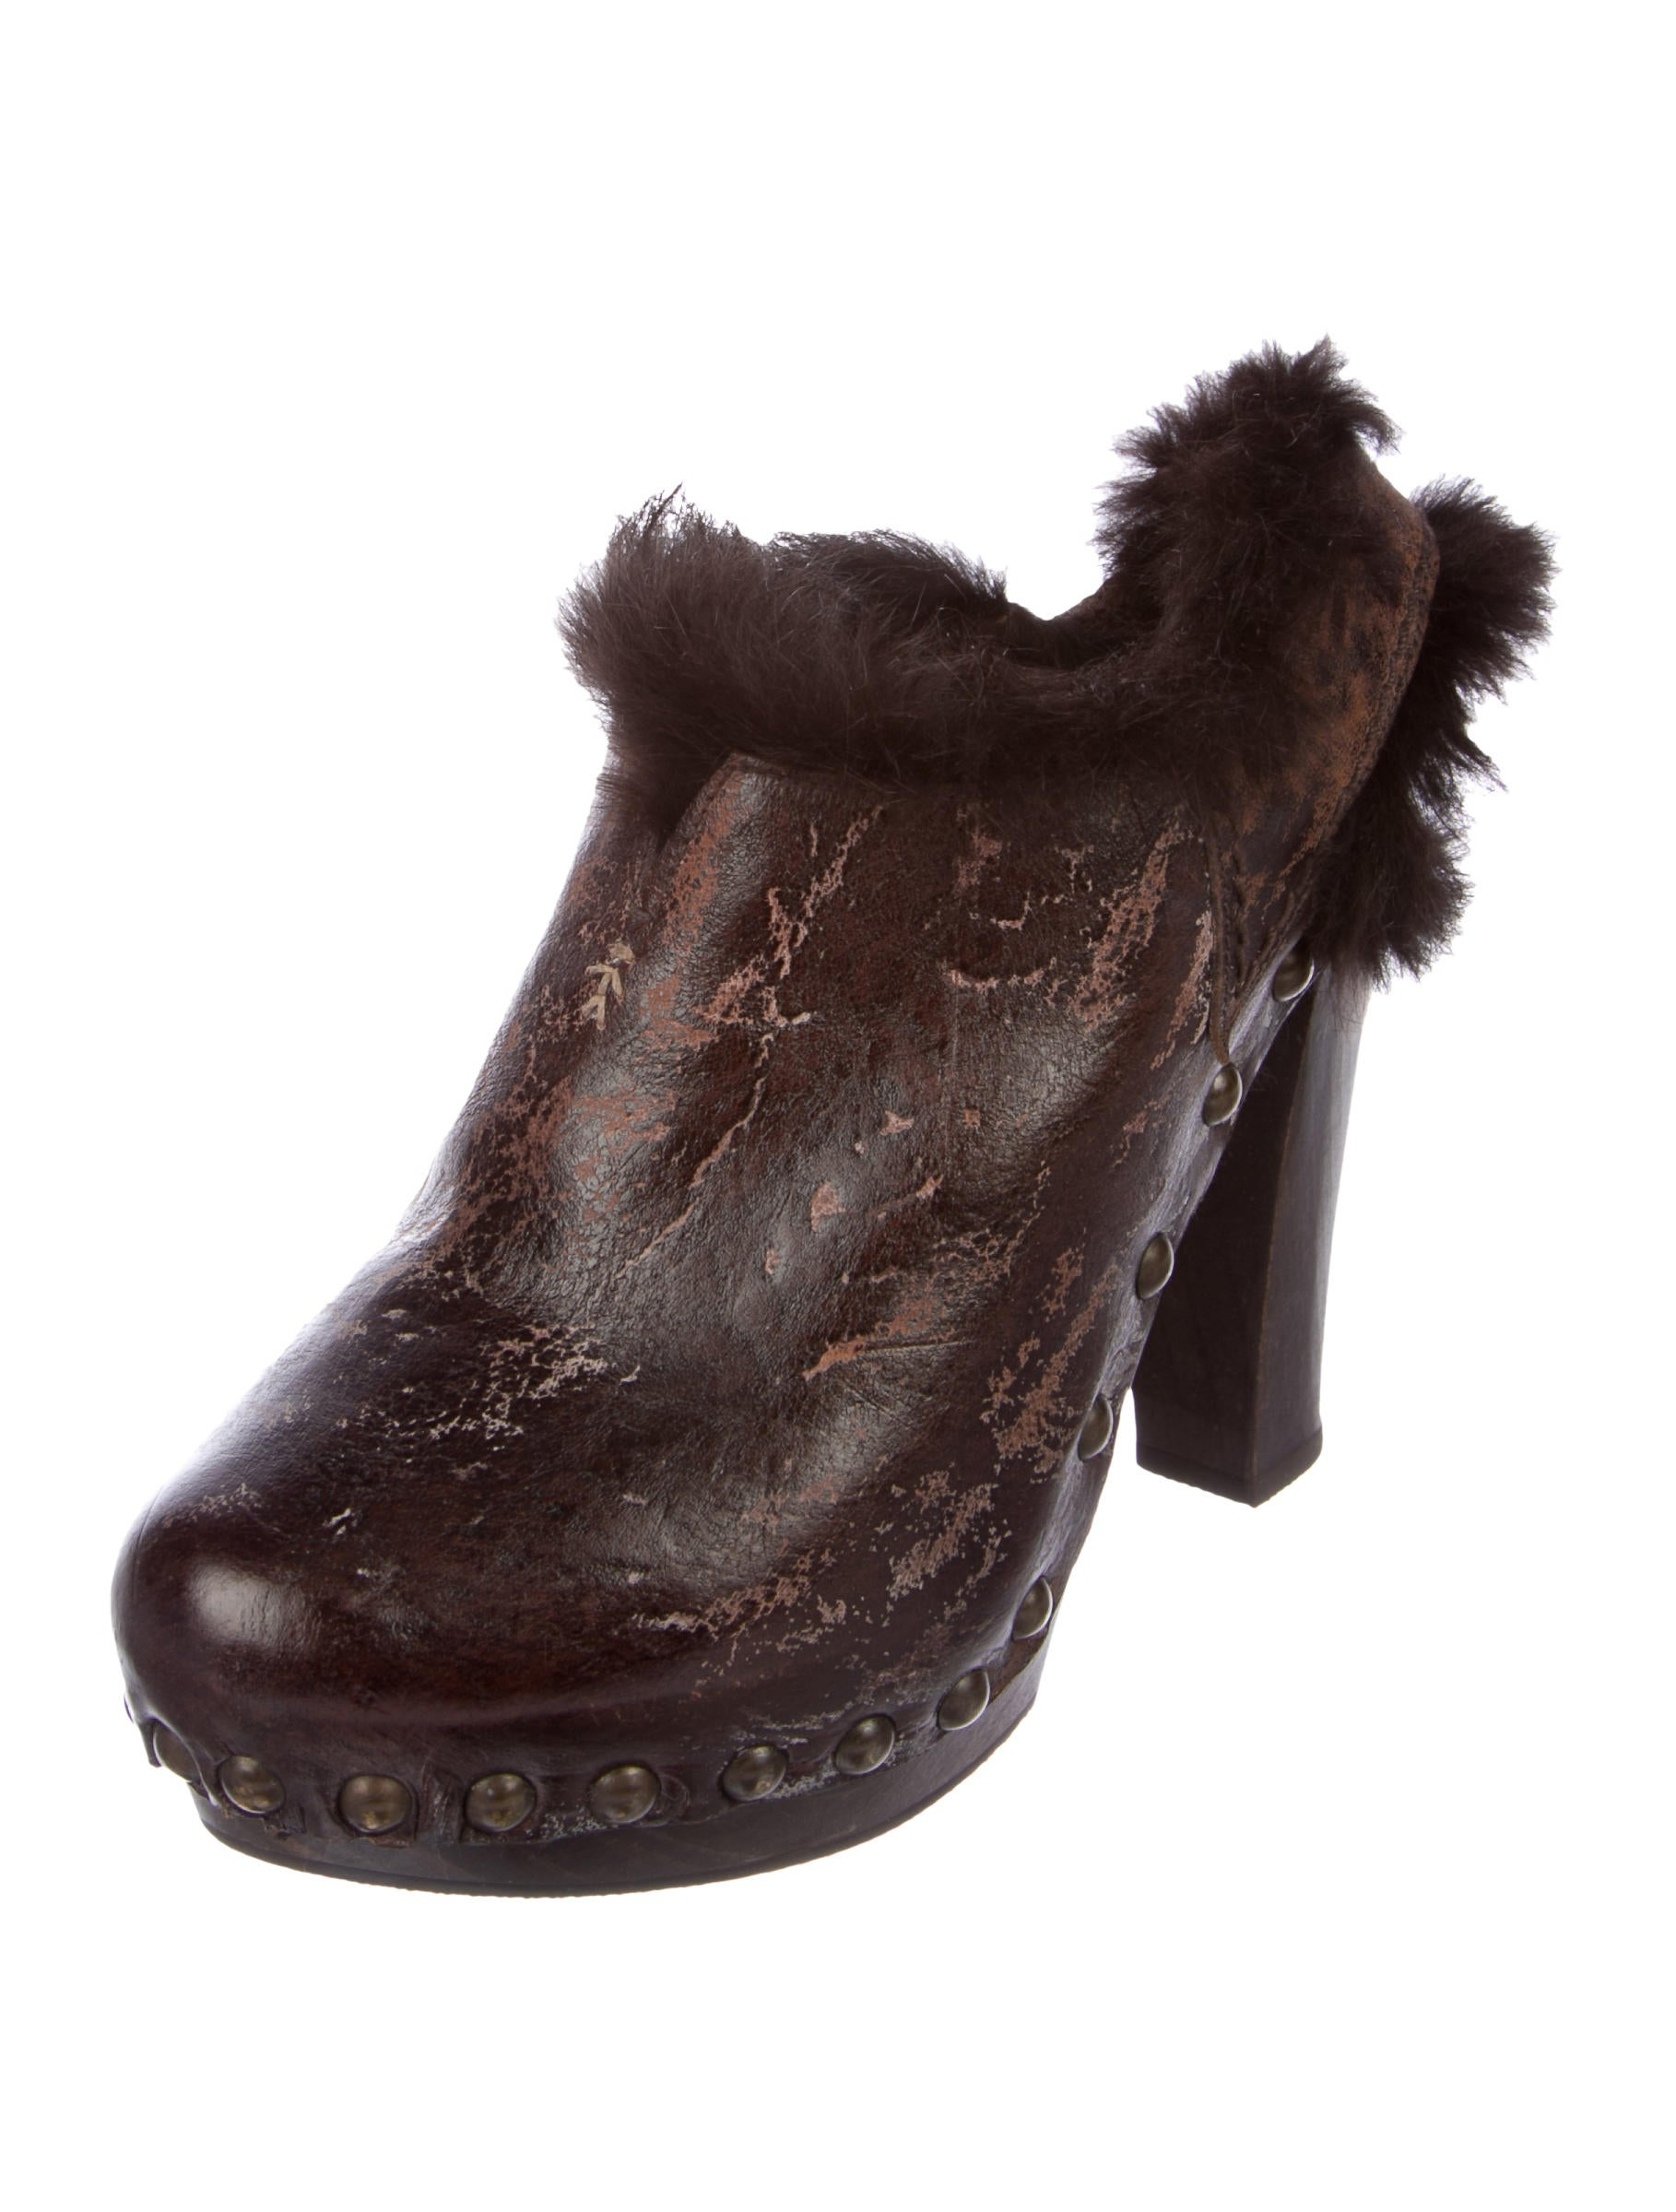 Henry Beguelin Fur-Trimmed Leather Booties discount authentic online best store to get for sale tumblr online clearance collections very cheap for sale IQOsXGWeV